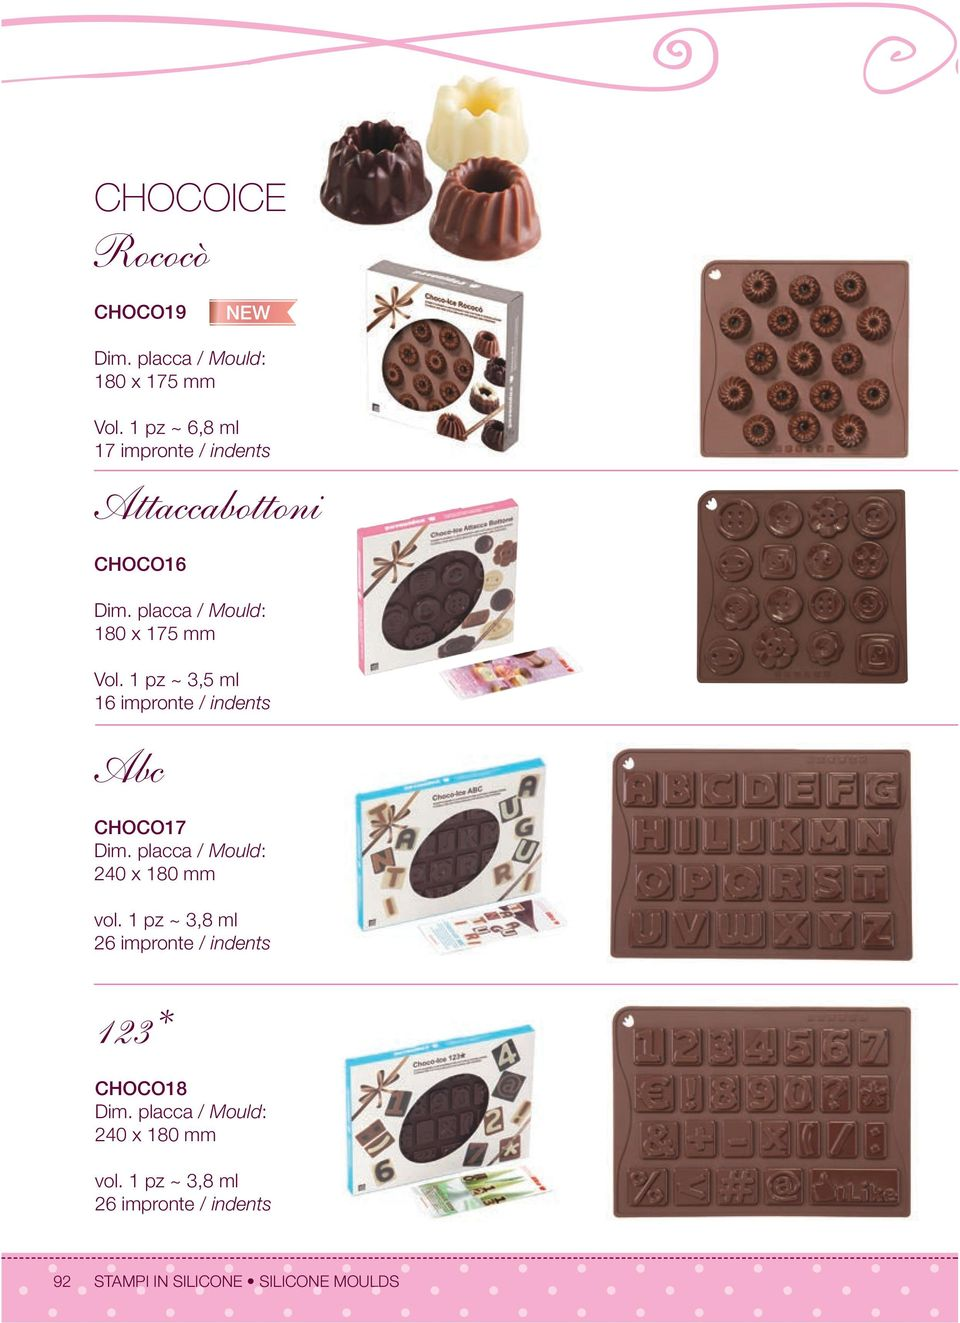 placca / Mould: 180 x 175 mm Vol. 1 pz ~ 3,5 ml 1 Abc CHOCO17 Dim.